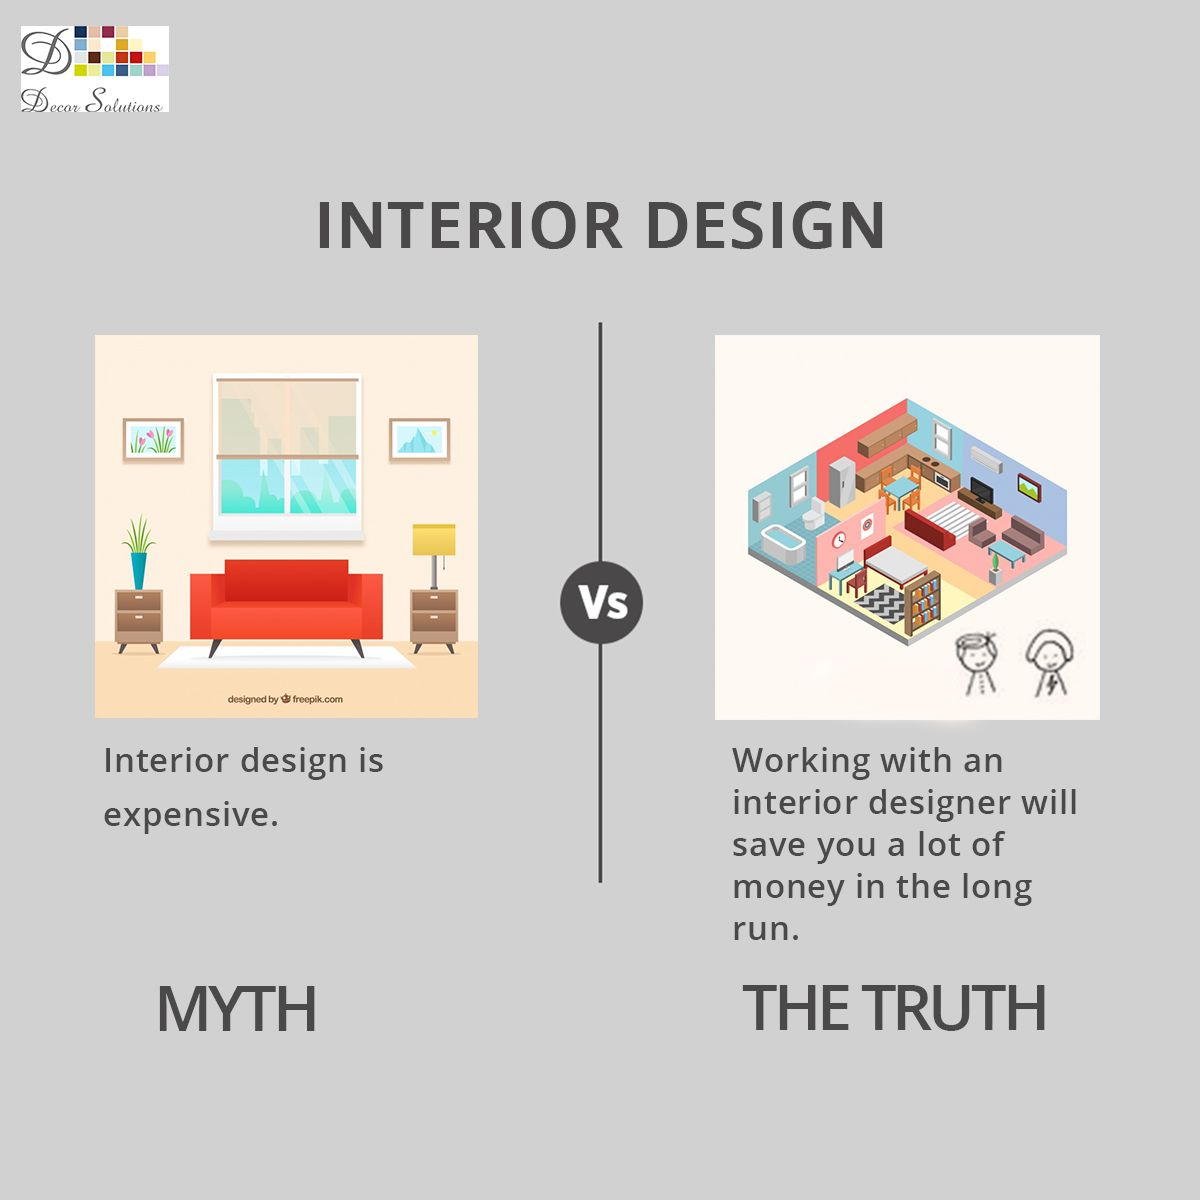 Myth About the Interior Designing DecorSolutions